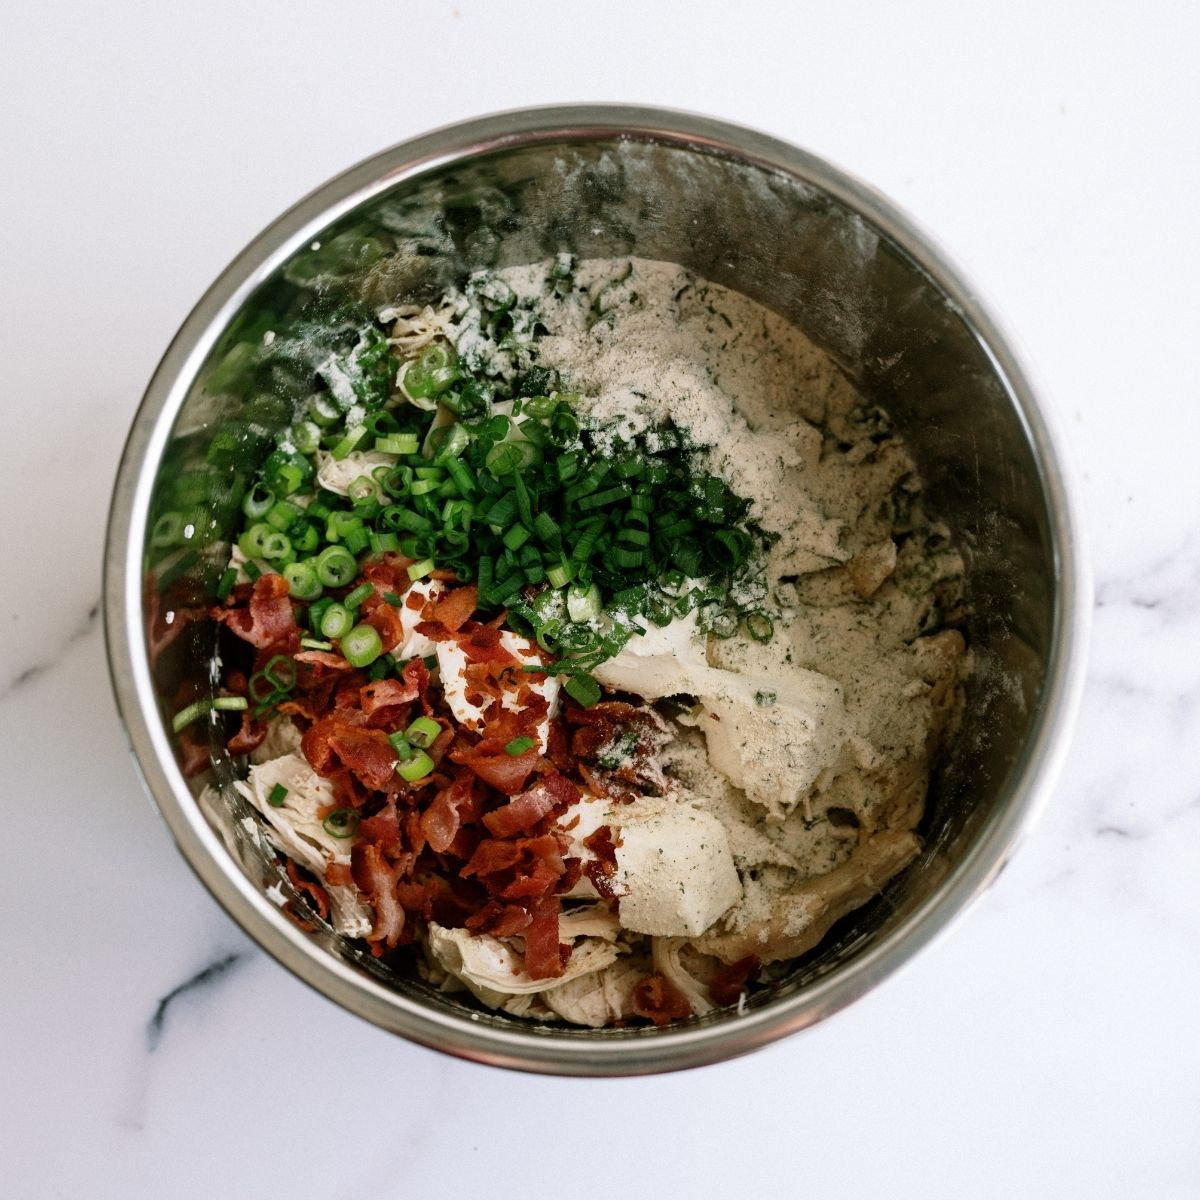 All ingredients for Chicken Bacon Ranch Sandwiches in the Instant Pot